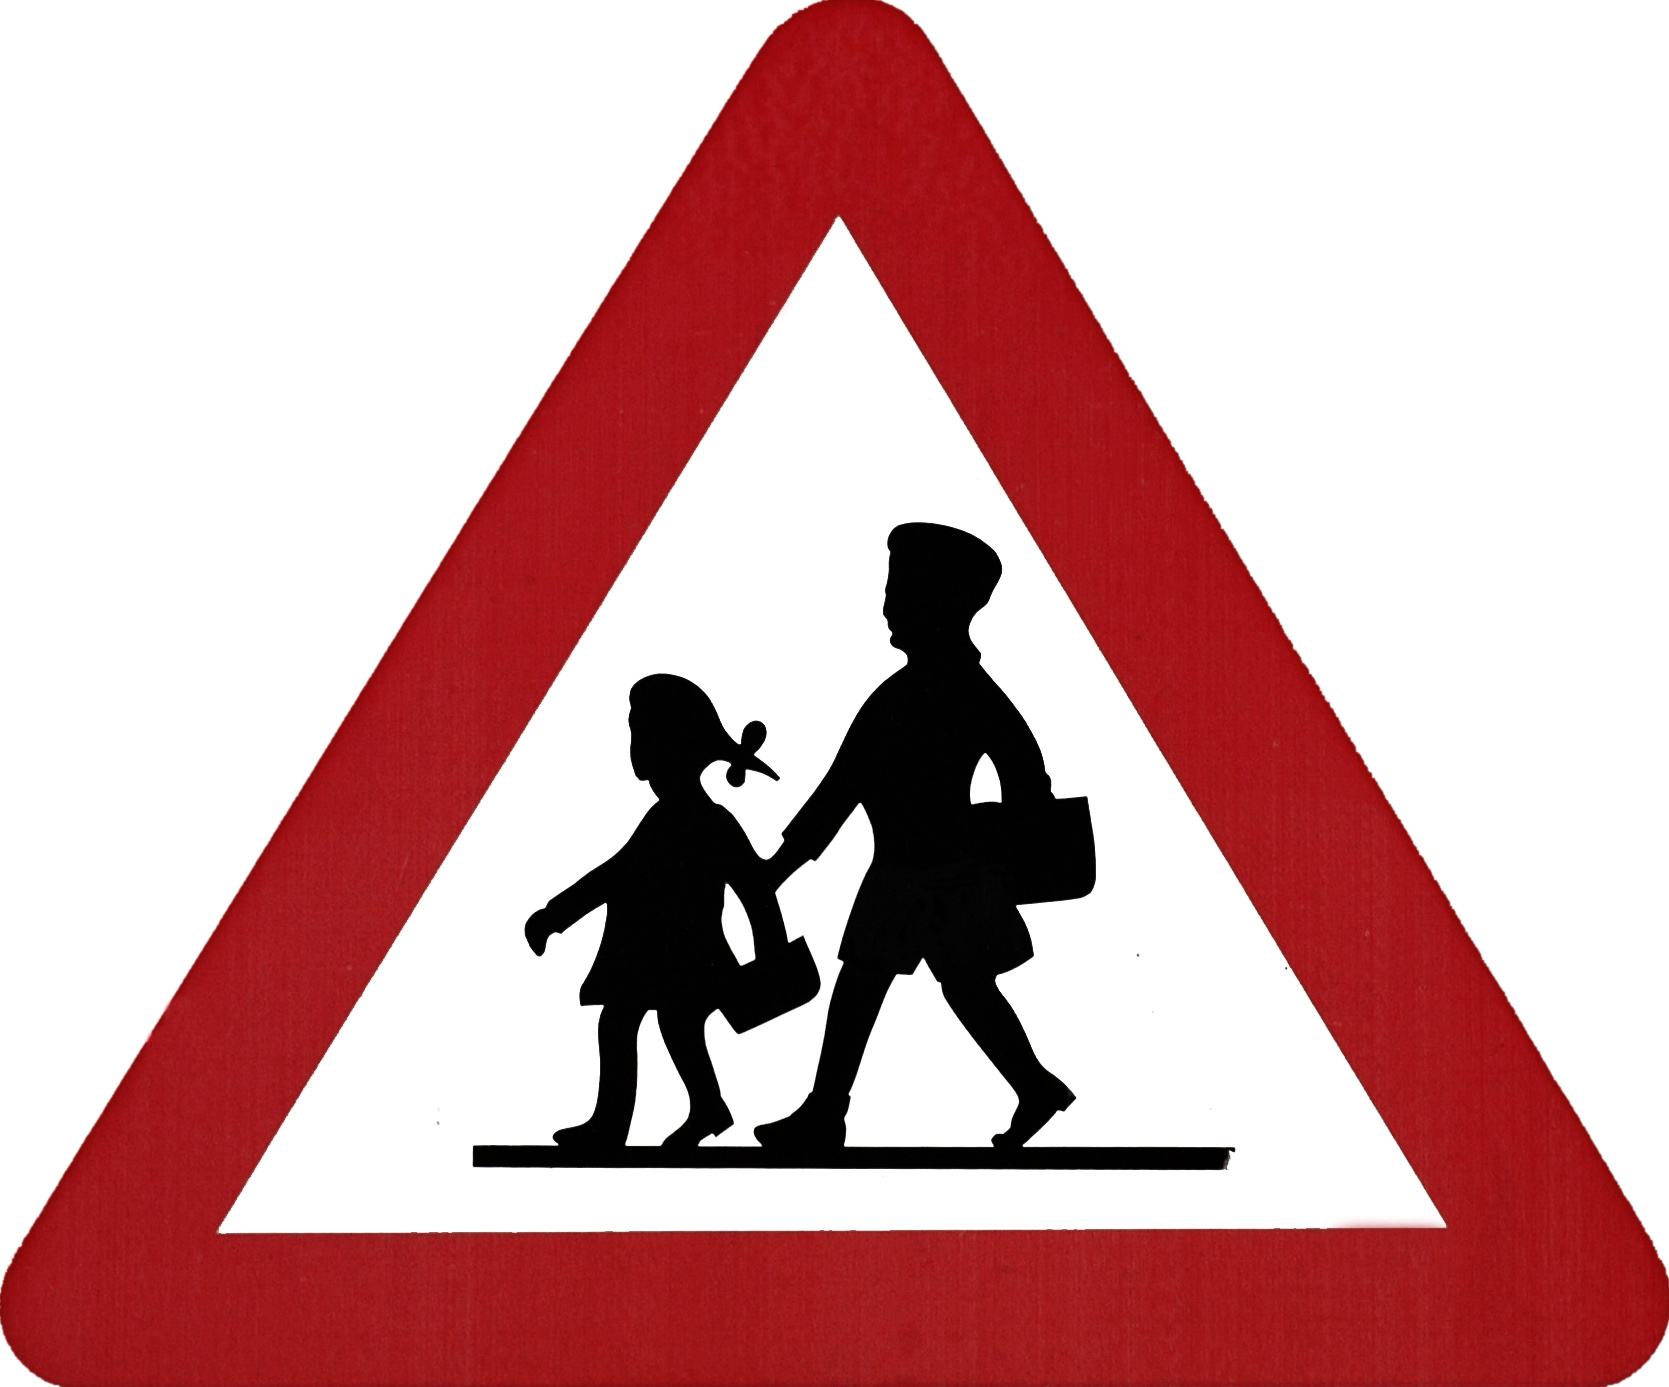 Road Signs For Kids - ClipArt Best